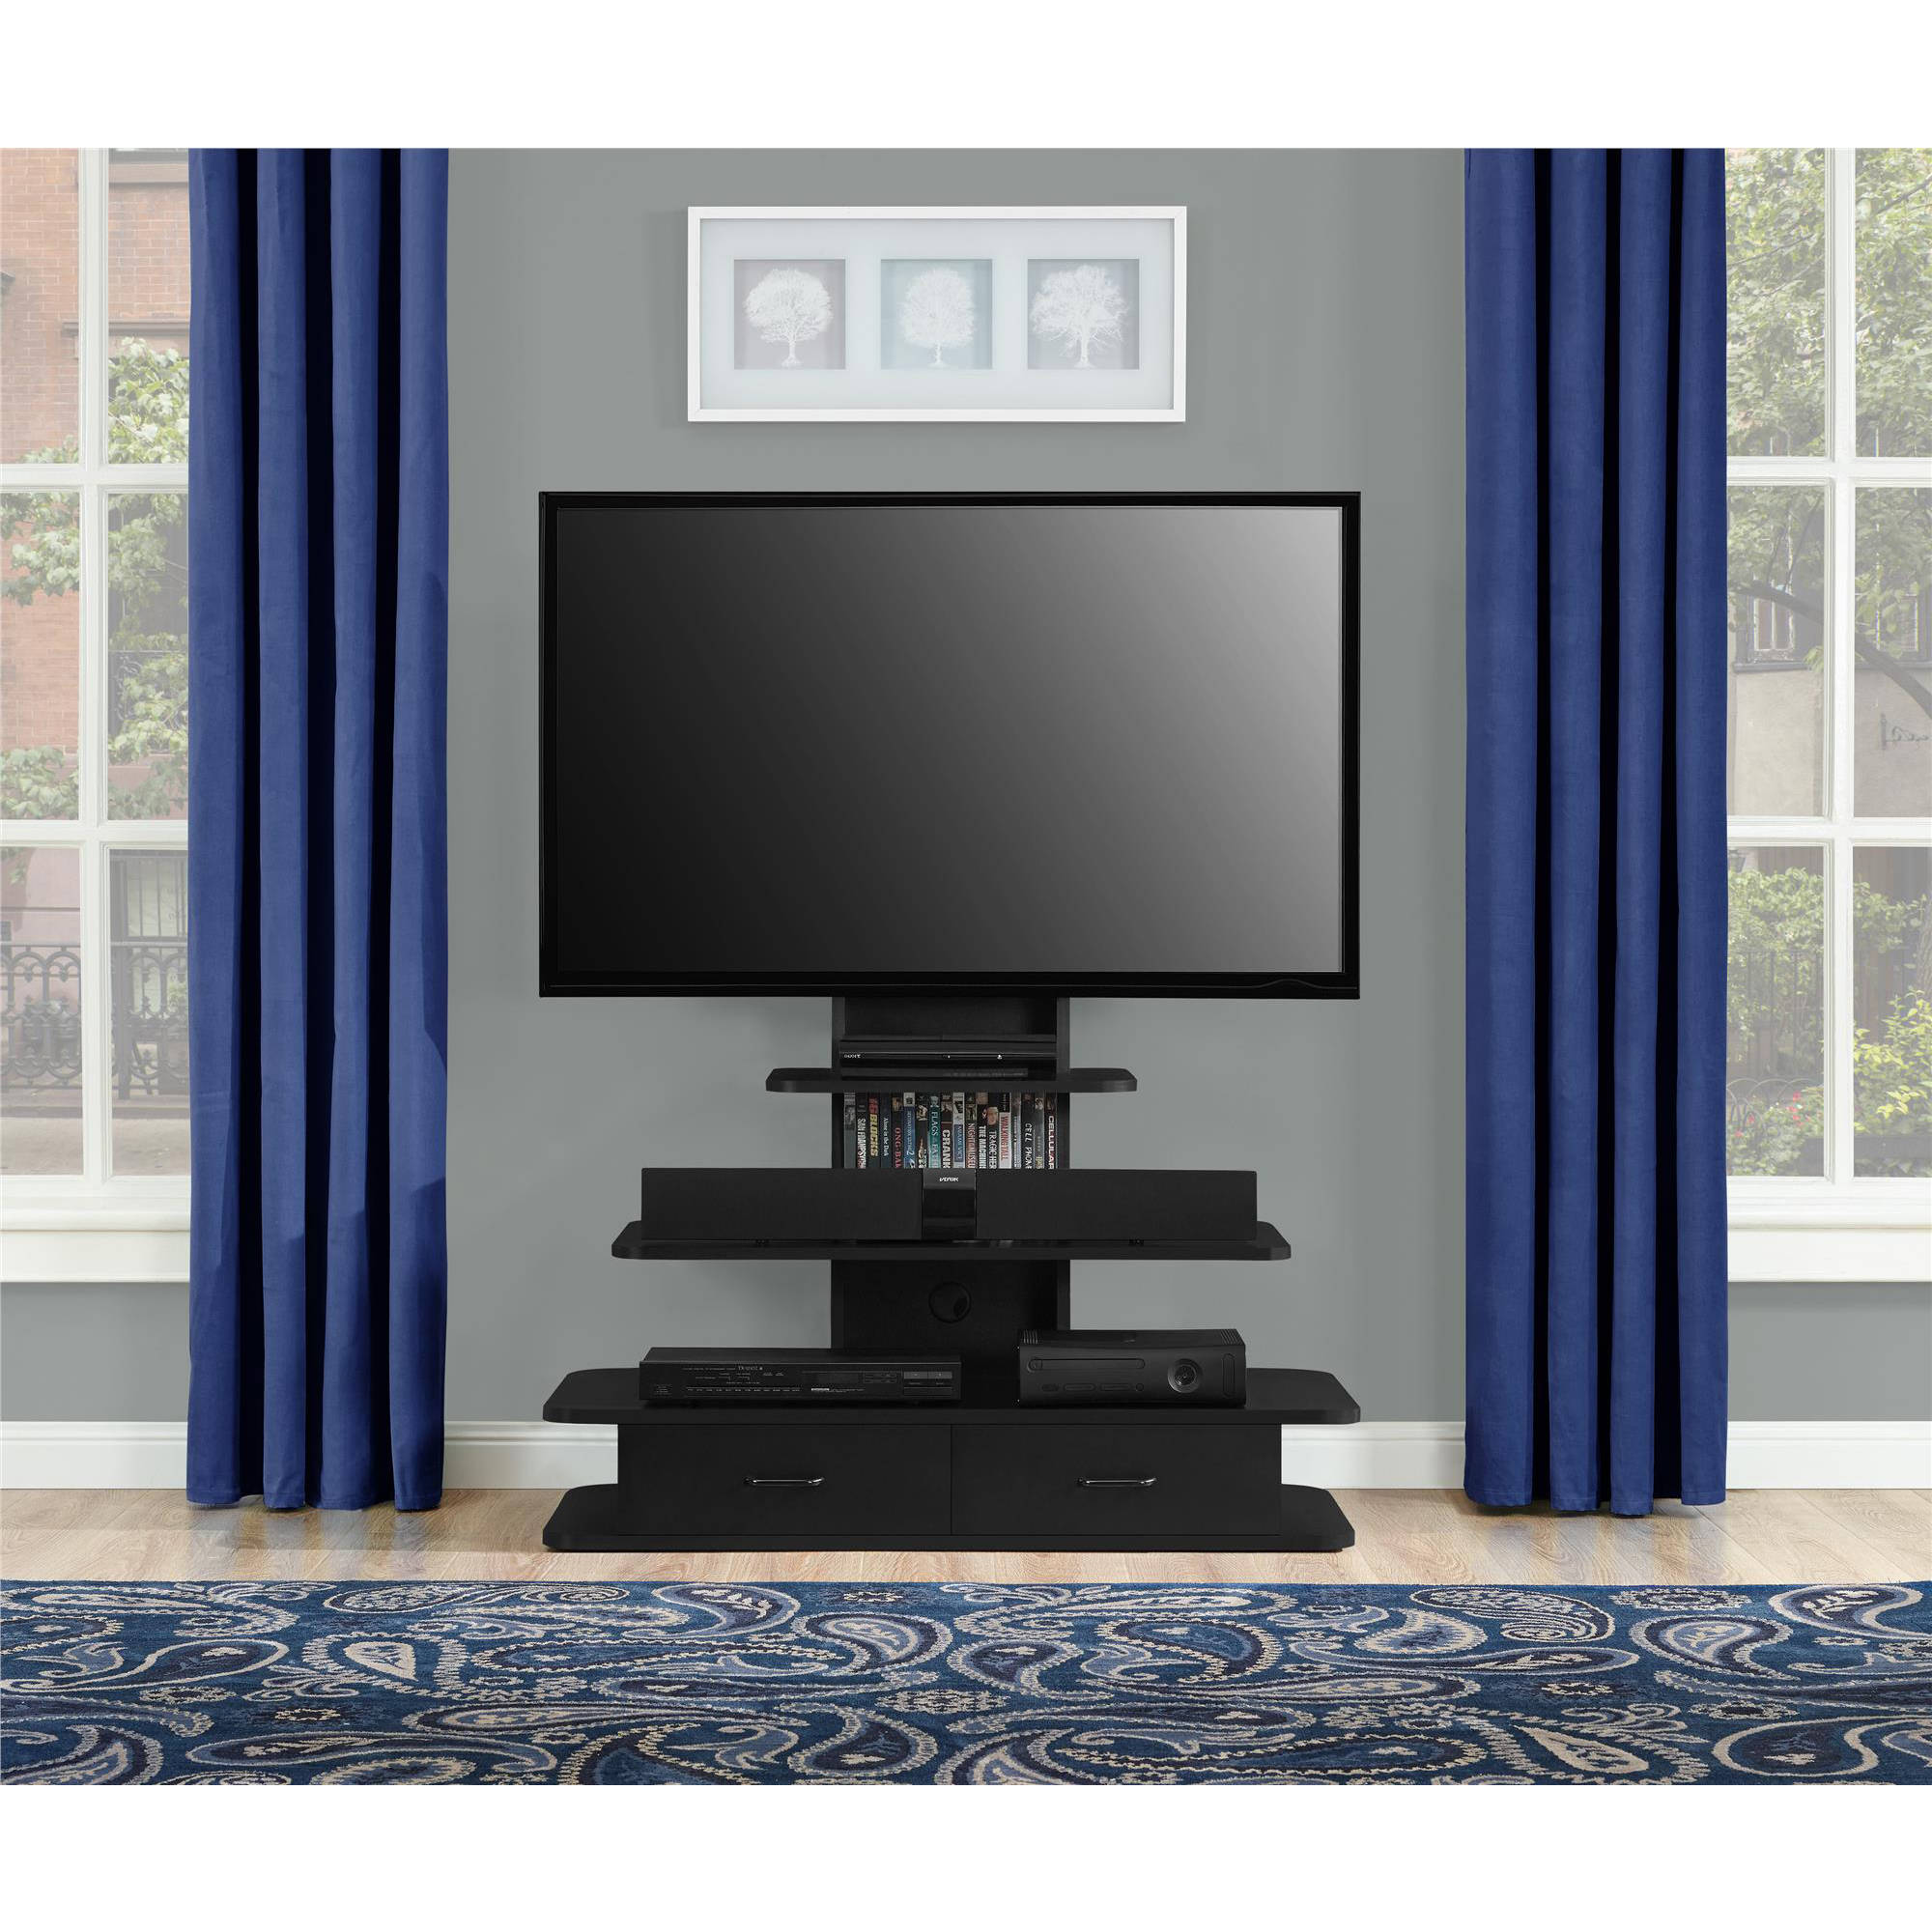 "Altra Galaxy XL TV Stand with Drawers for TVs up to 70"", Multiple Colors"